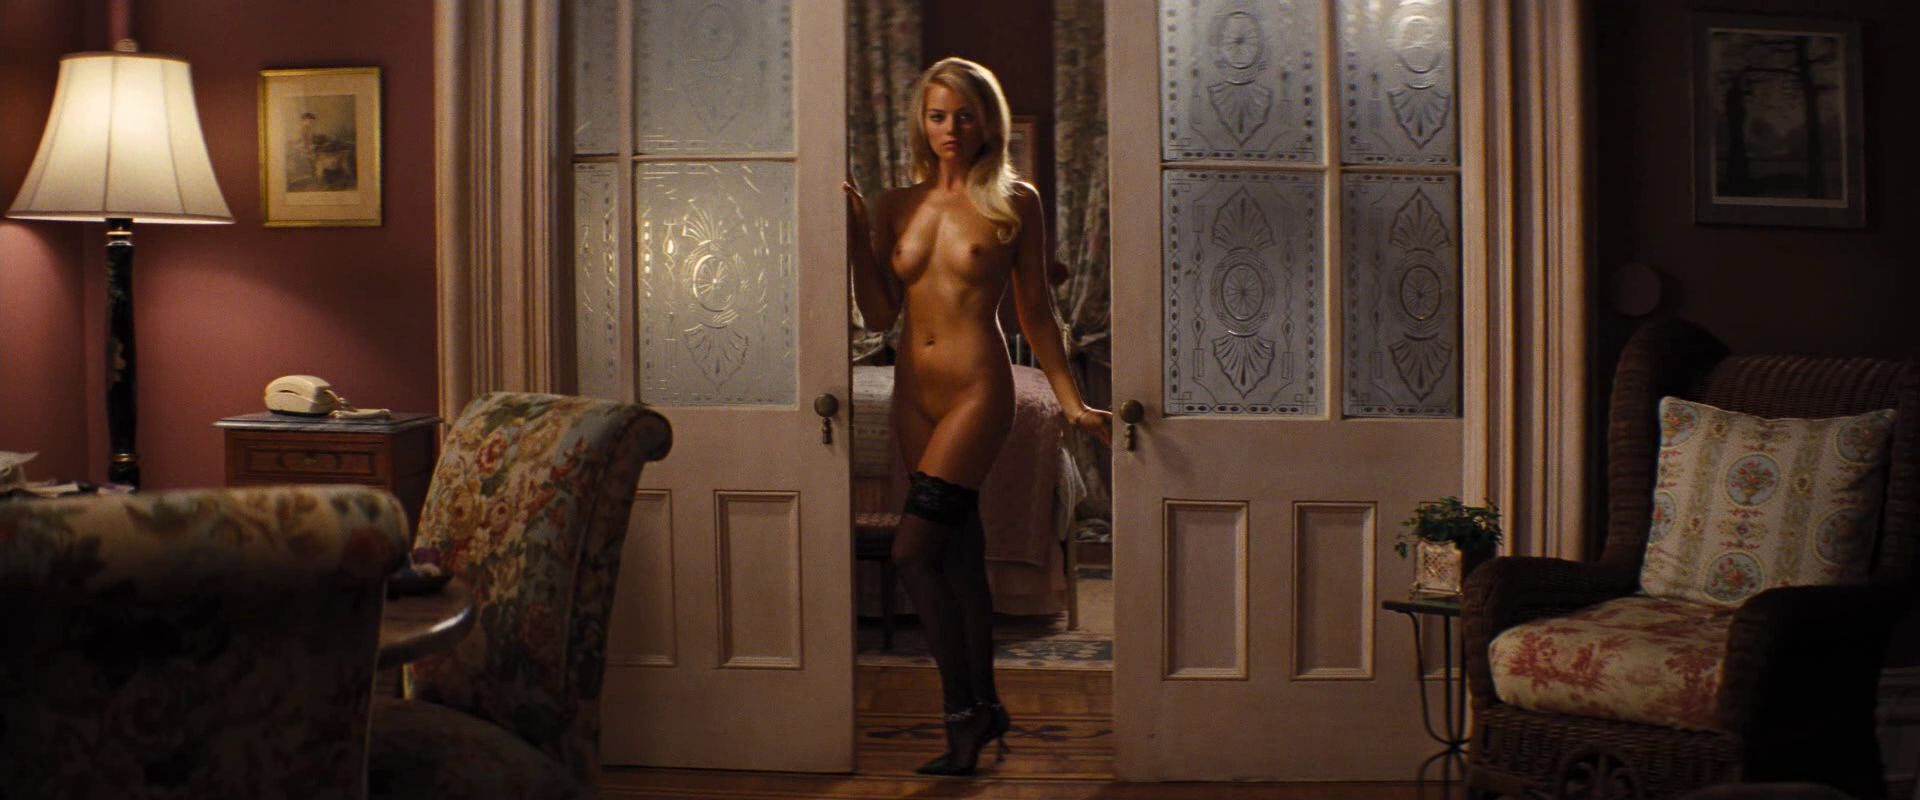 naked thin girl in mirror